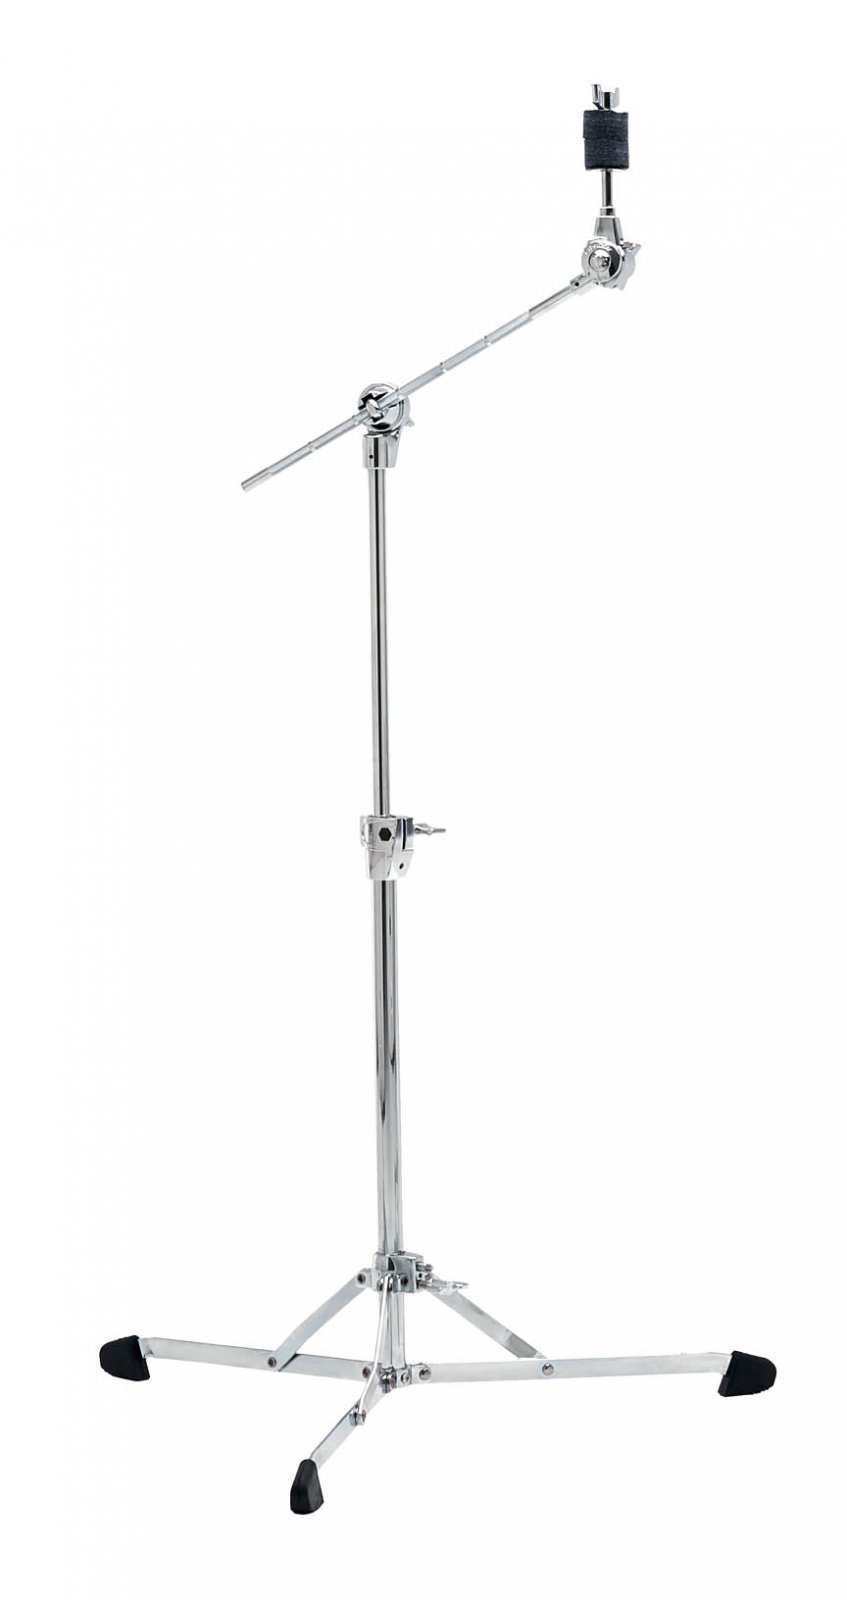 Gibraltar 8709 Flat Base Boom Cymbal Stand